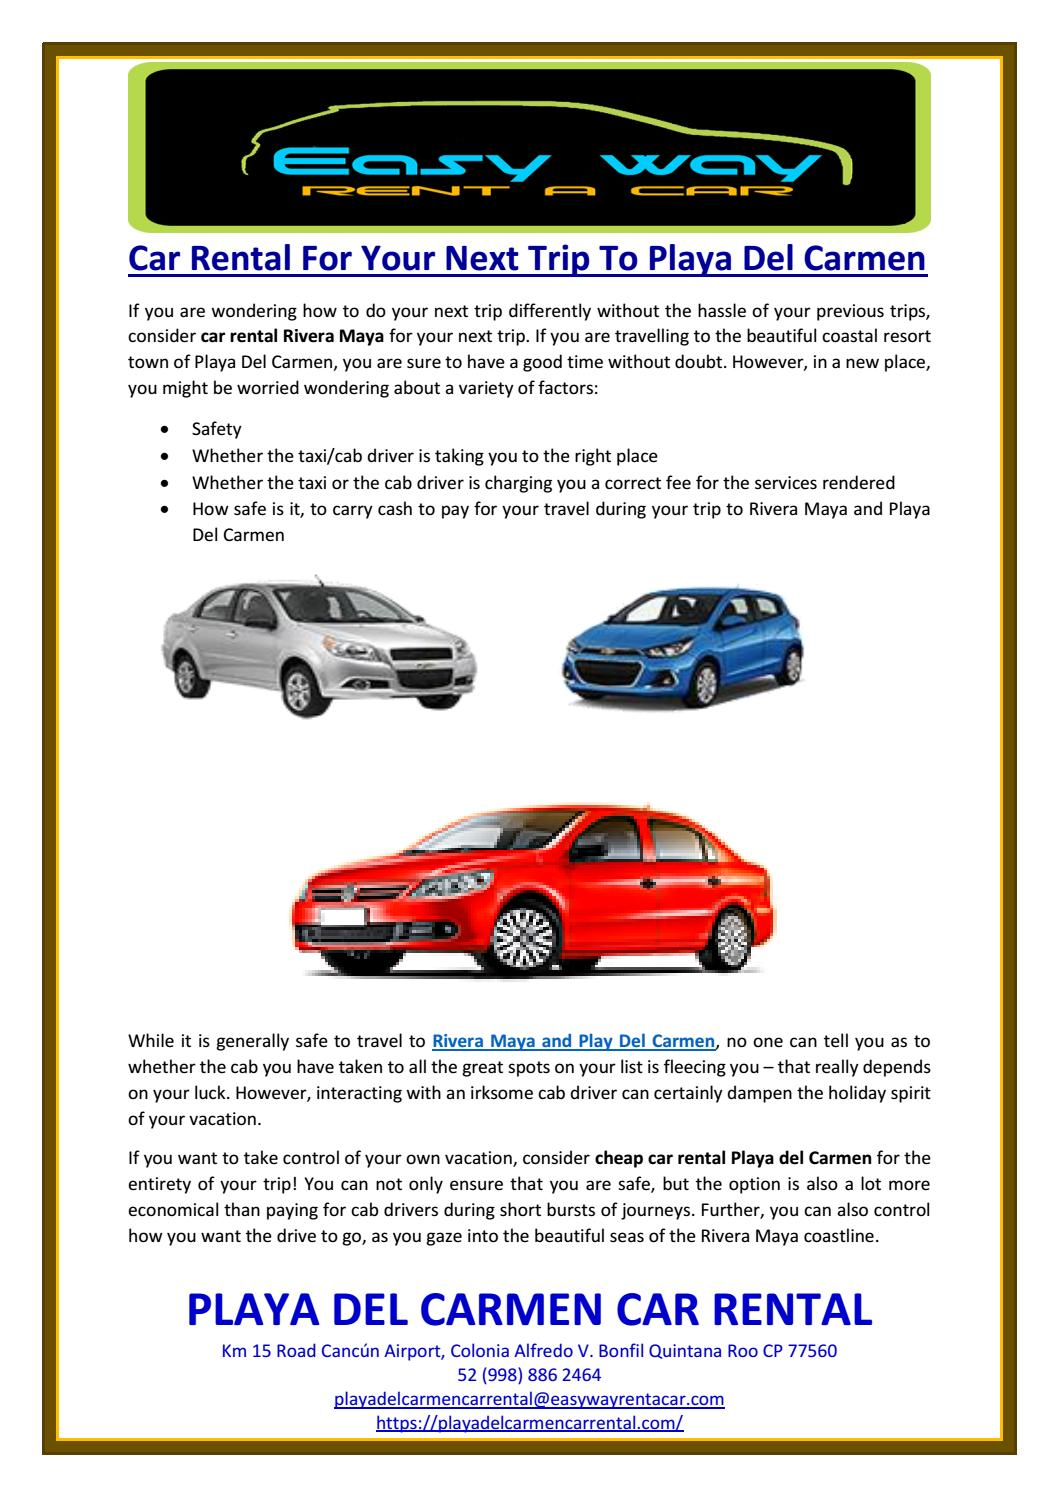 Car Rental For Your Next Trip To Playa Del Carmen By Playa Del Carmen Car Rental Issuu